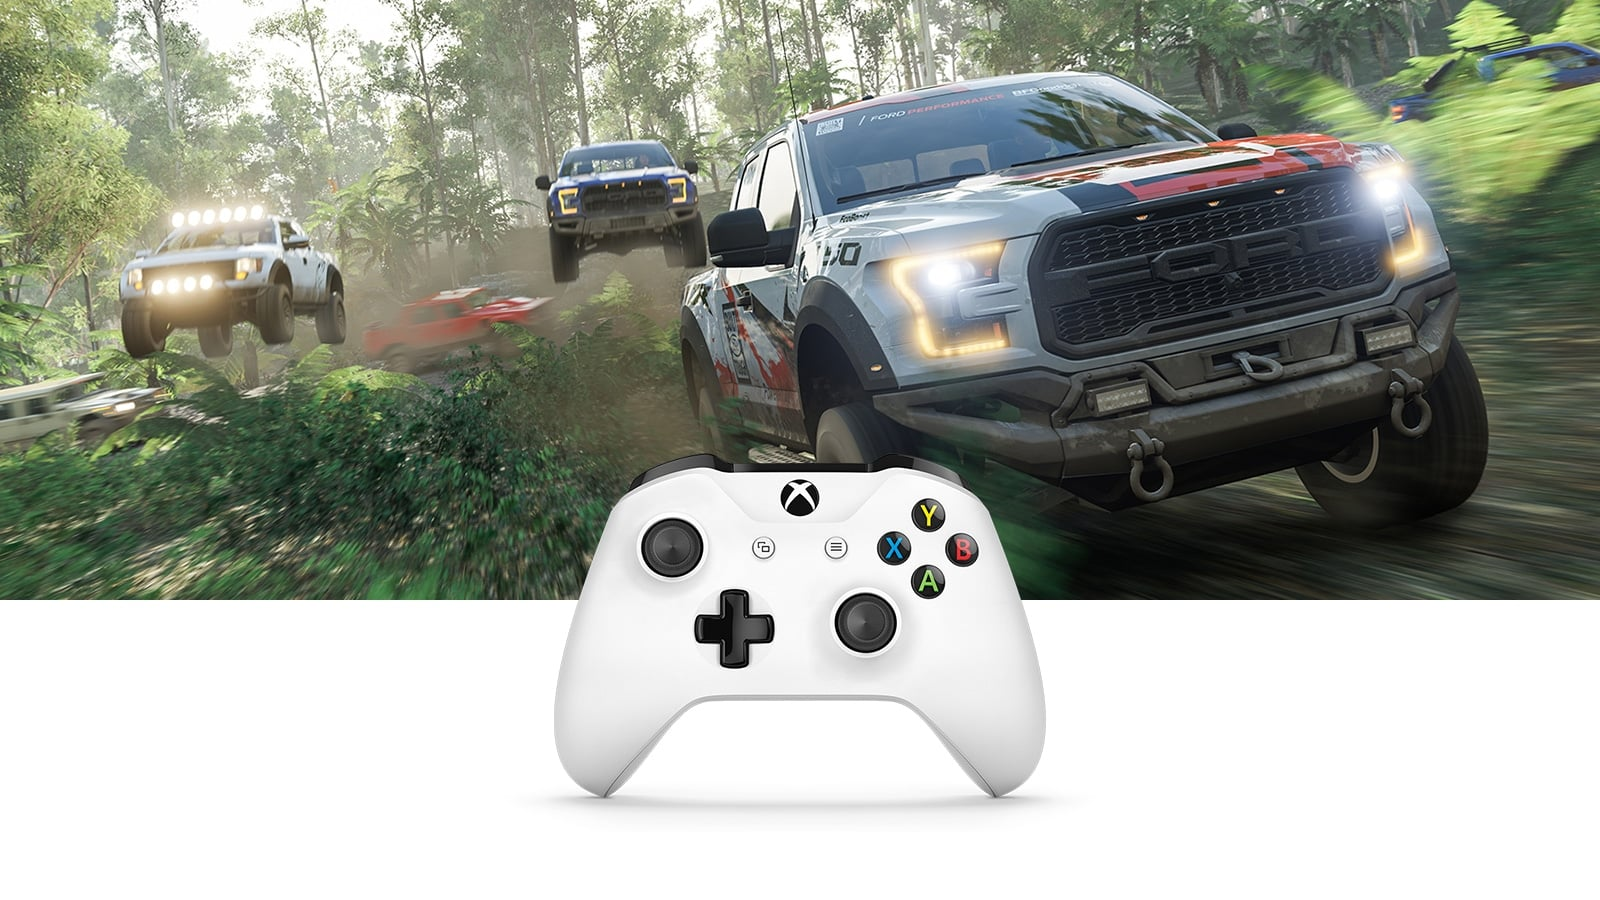 Xbox One S controller facing front with image of trucks racing through a forest behind it